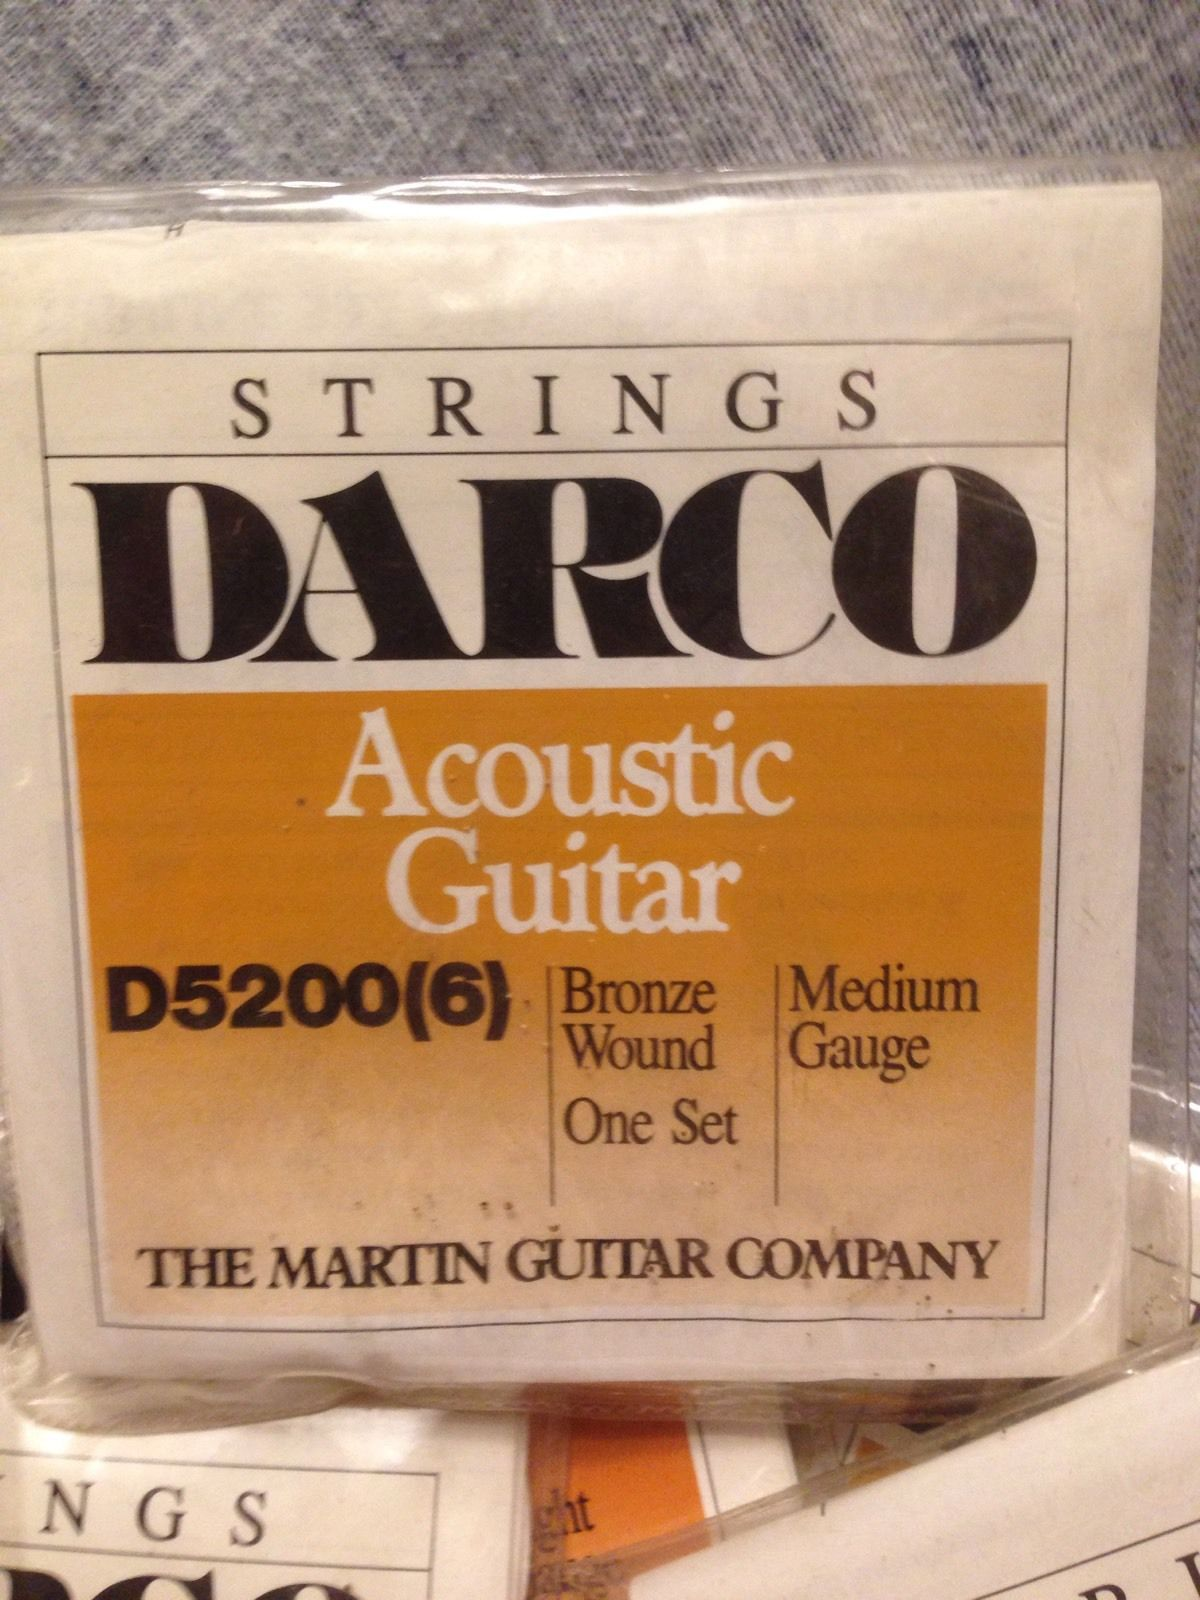 10 Sets Acoustic Guitar 6 String Sets Martin Guitar Co. Some Rust Spots